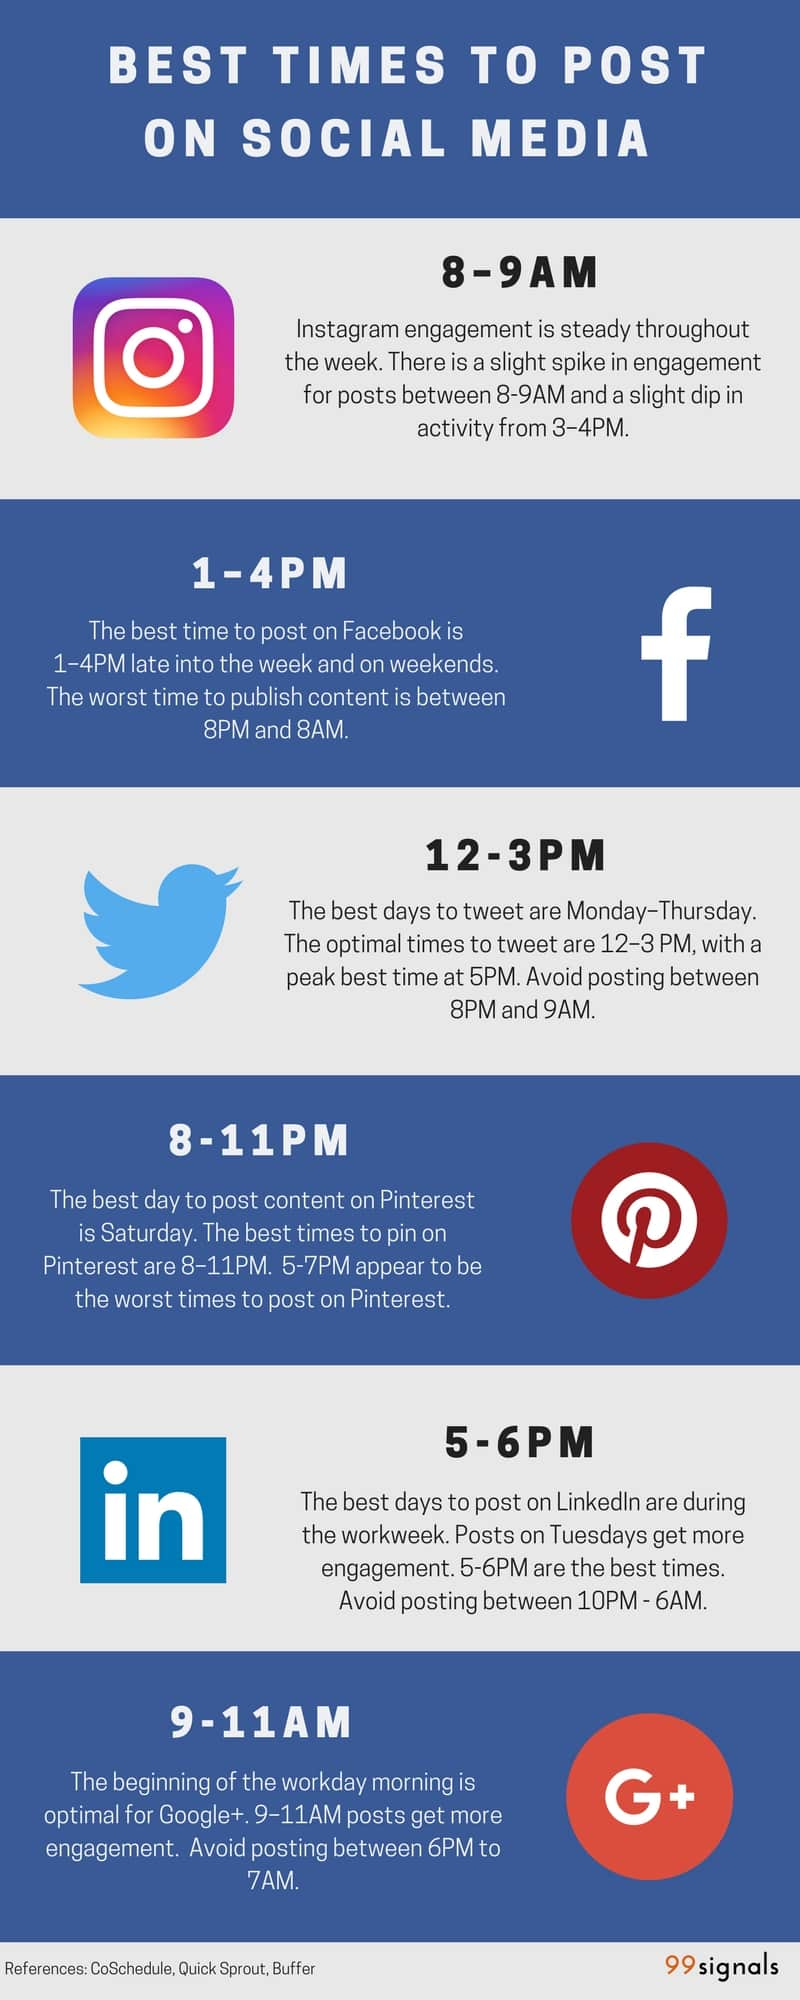 Best Times to Post on Social Media [Infographic]